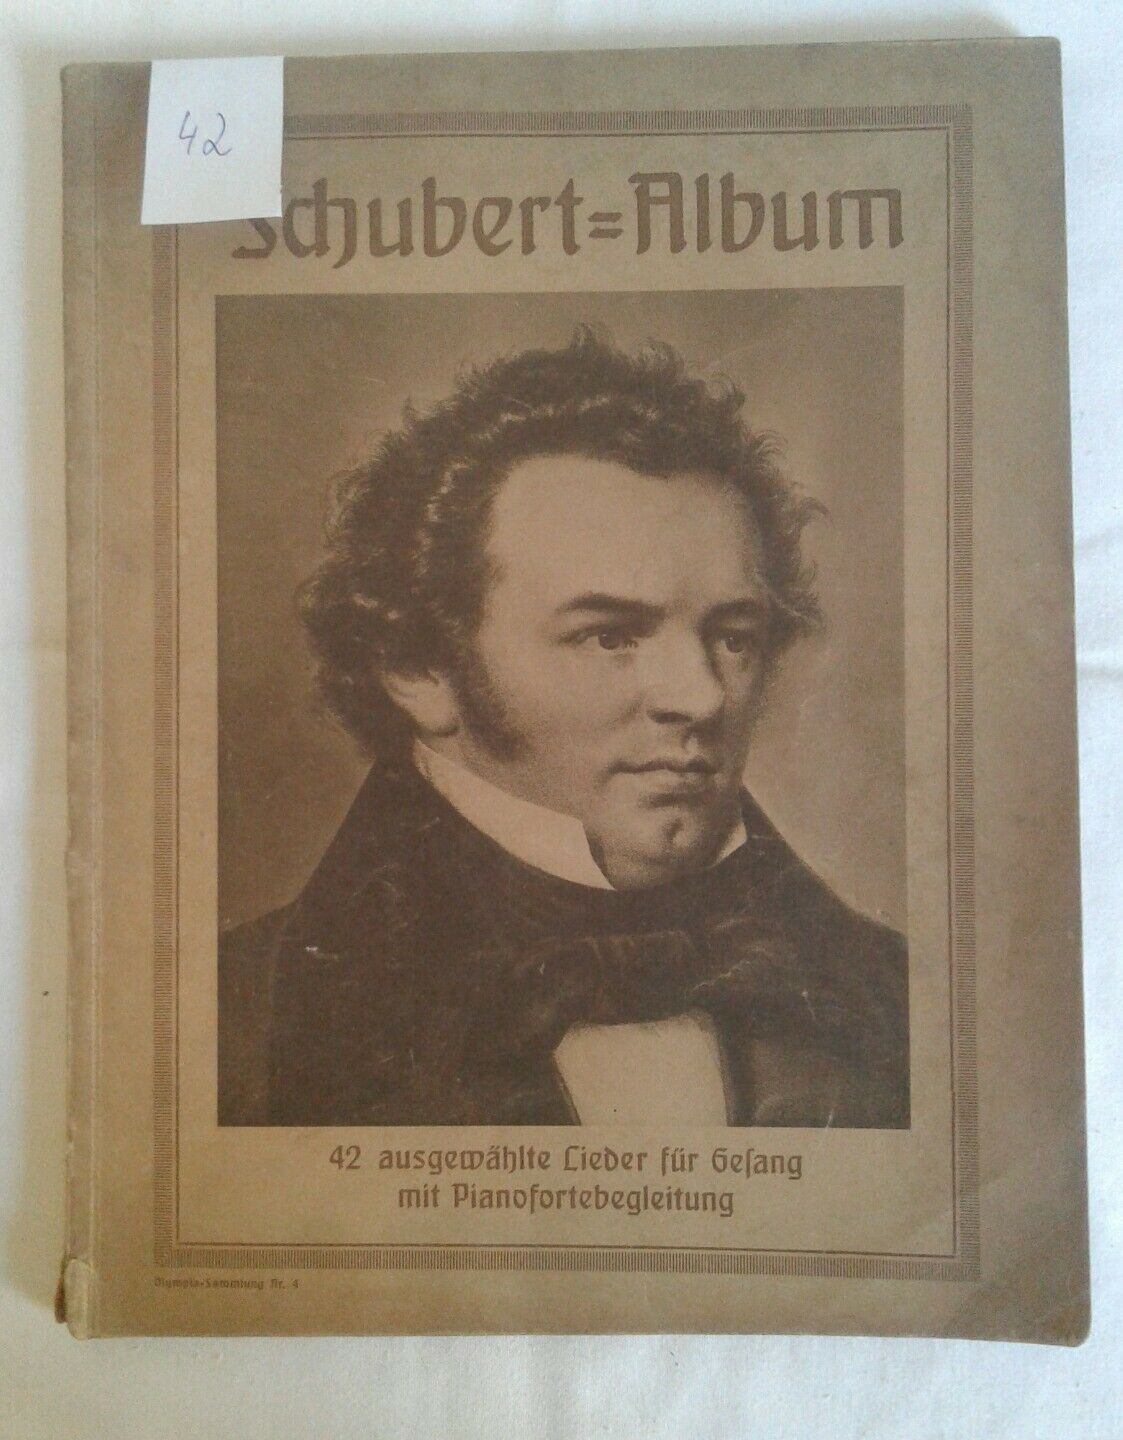 Altes Notenheft Notenbuch Franz Schubert Album Noten Lieder Gesang Pianoforte